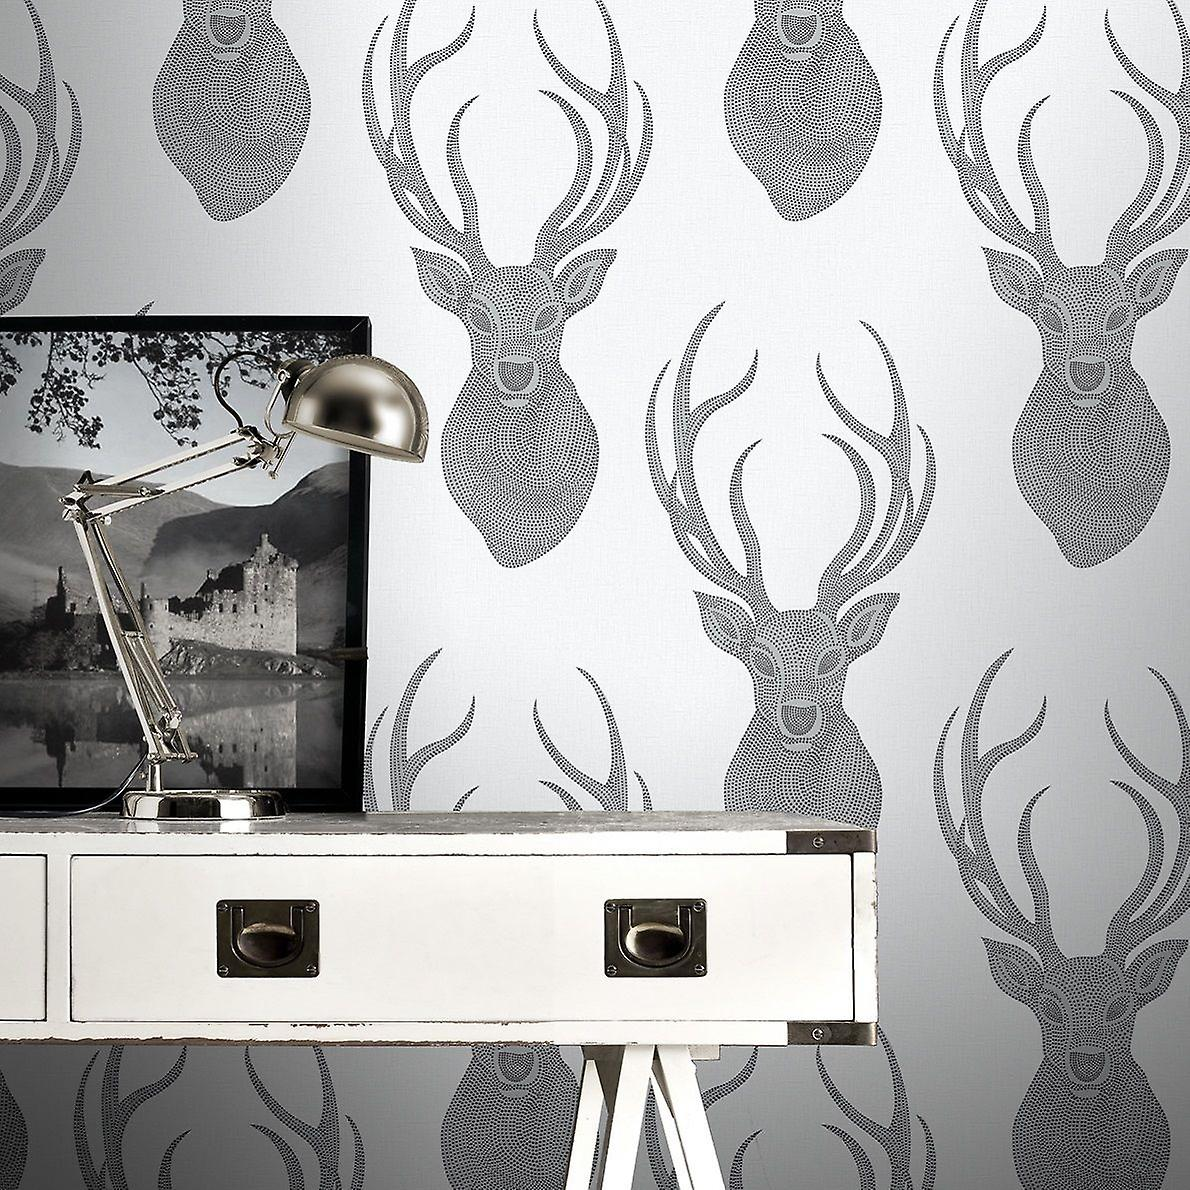 Stag Wallpaper Animal Print Glitter Textured White Black Silver Rasch